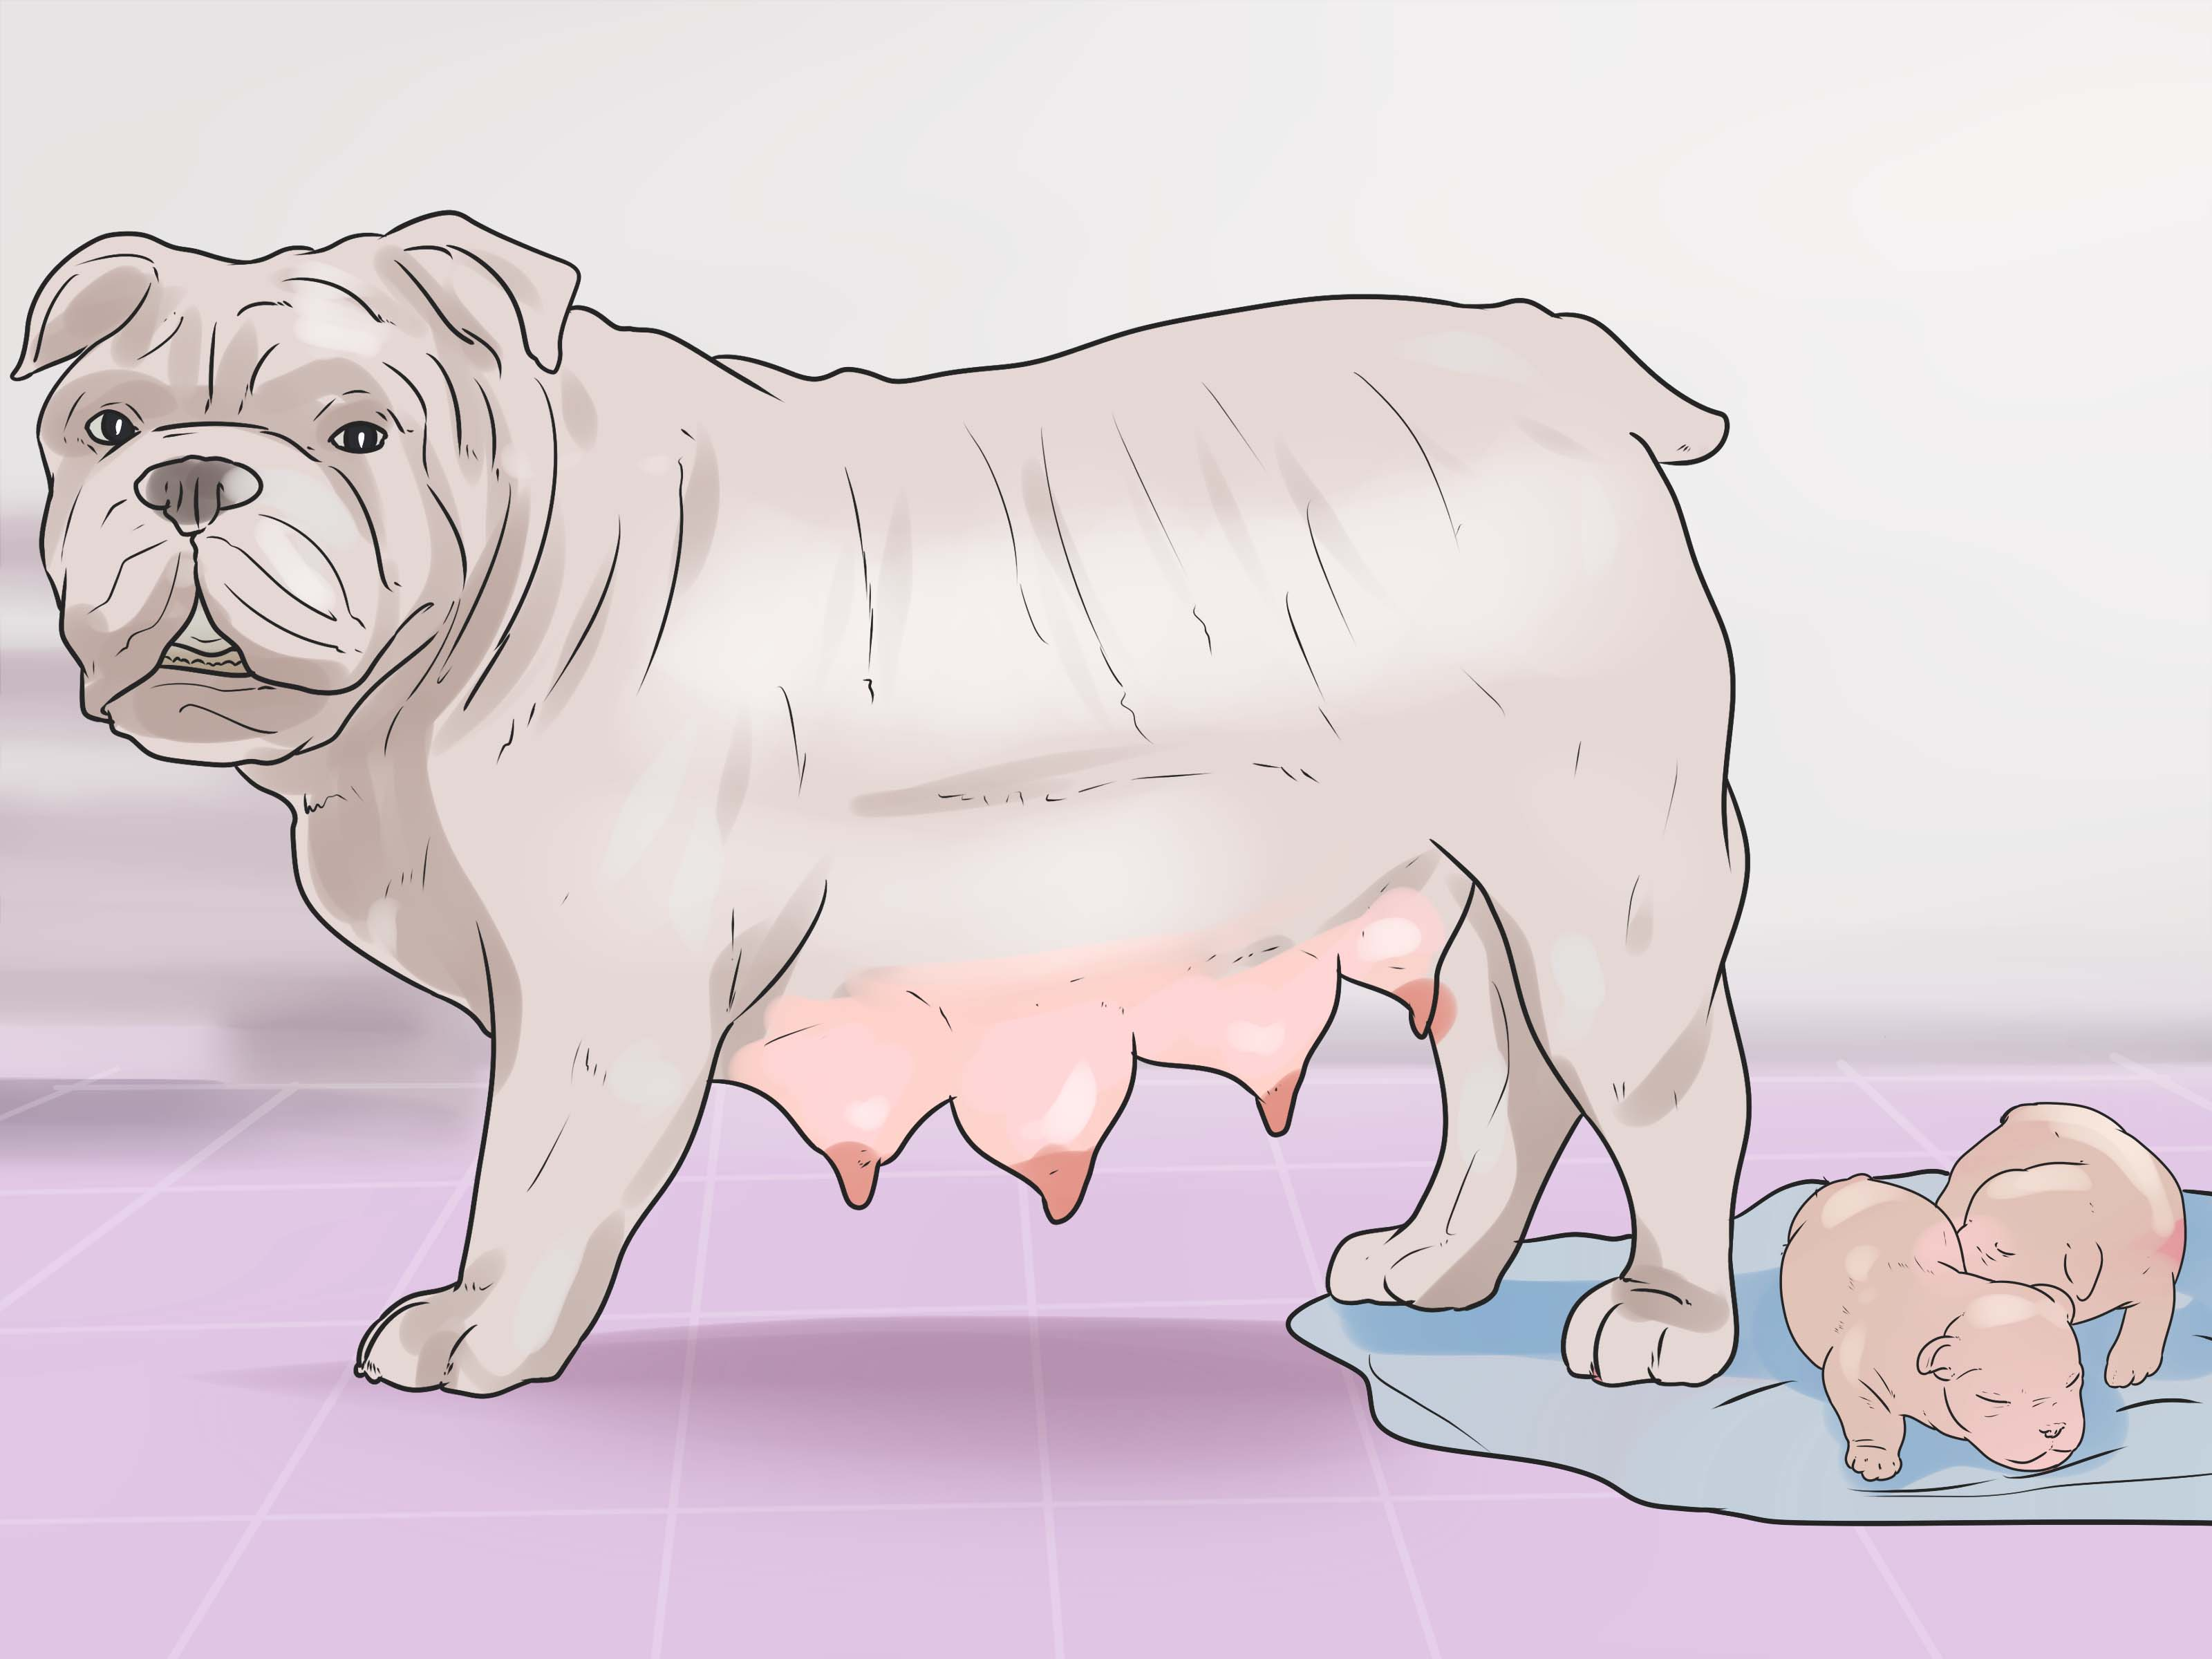 Prodigious Help Your Dog Whelp Or Deliver Puppies Step 17 How To Make Dog Throw Up Peroxide How To Make Dog Throw Up Underwear bark post How To Make Dog Throw Up